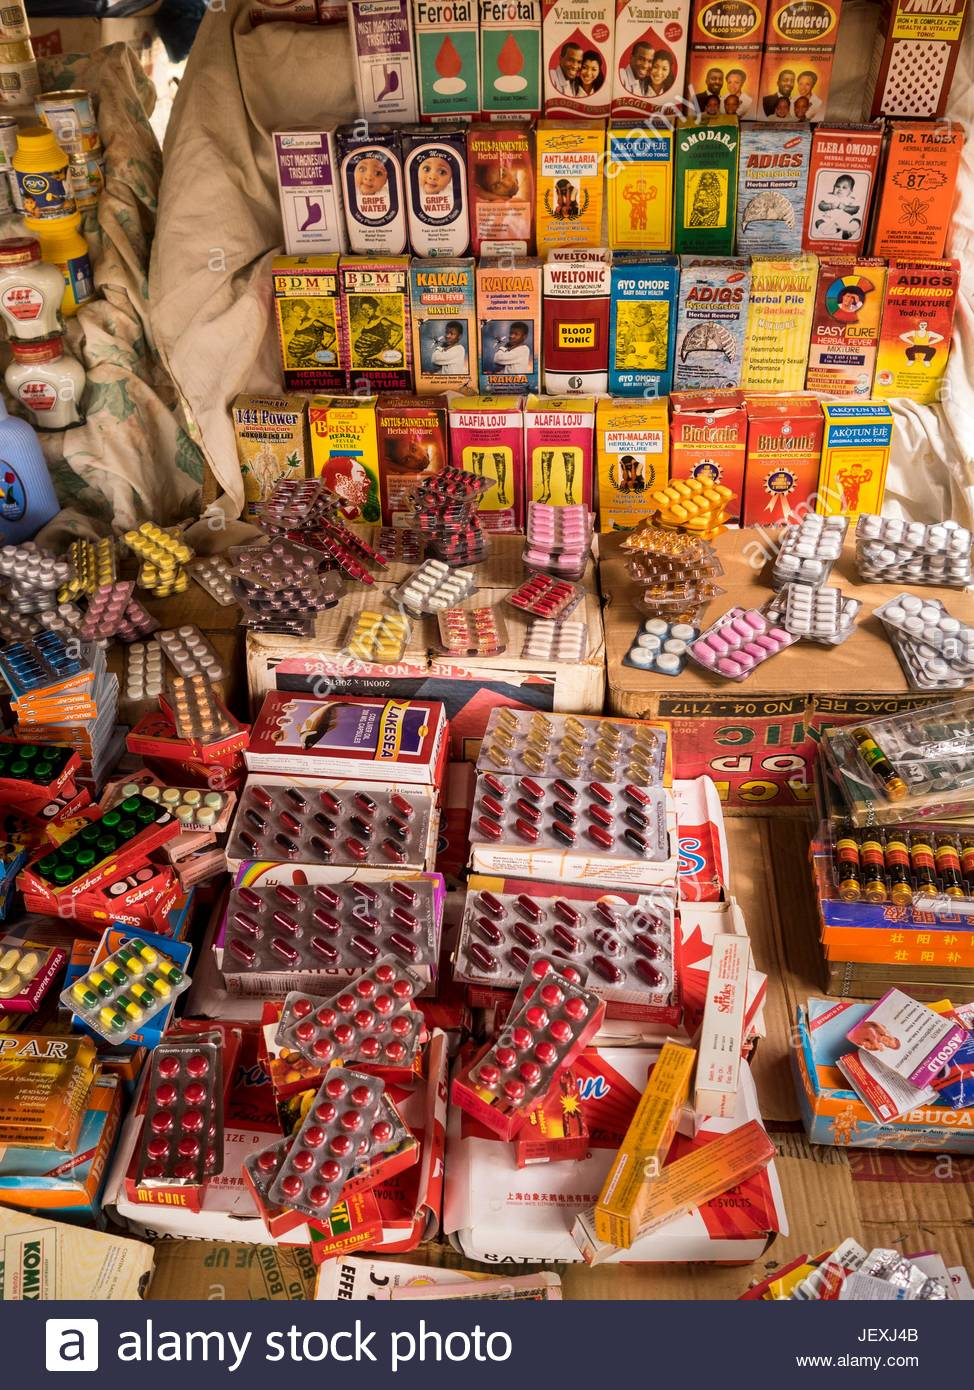 Fake medicines made in Nigeria in the Ije street market in Issaba, a district in Onigbolo. - Stock Image